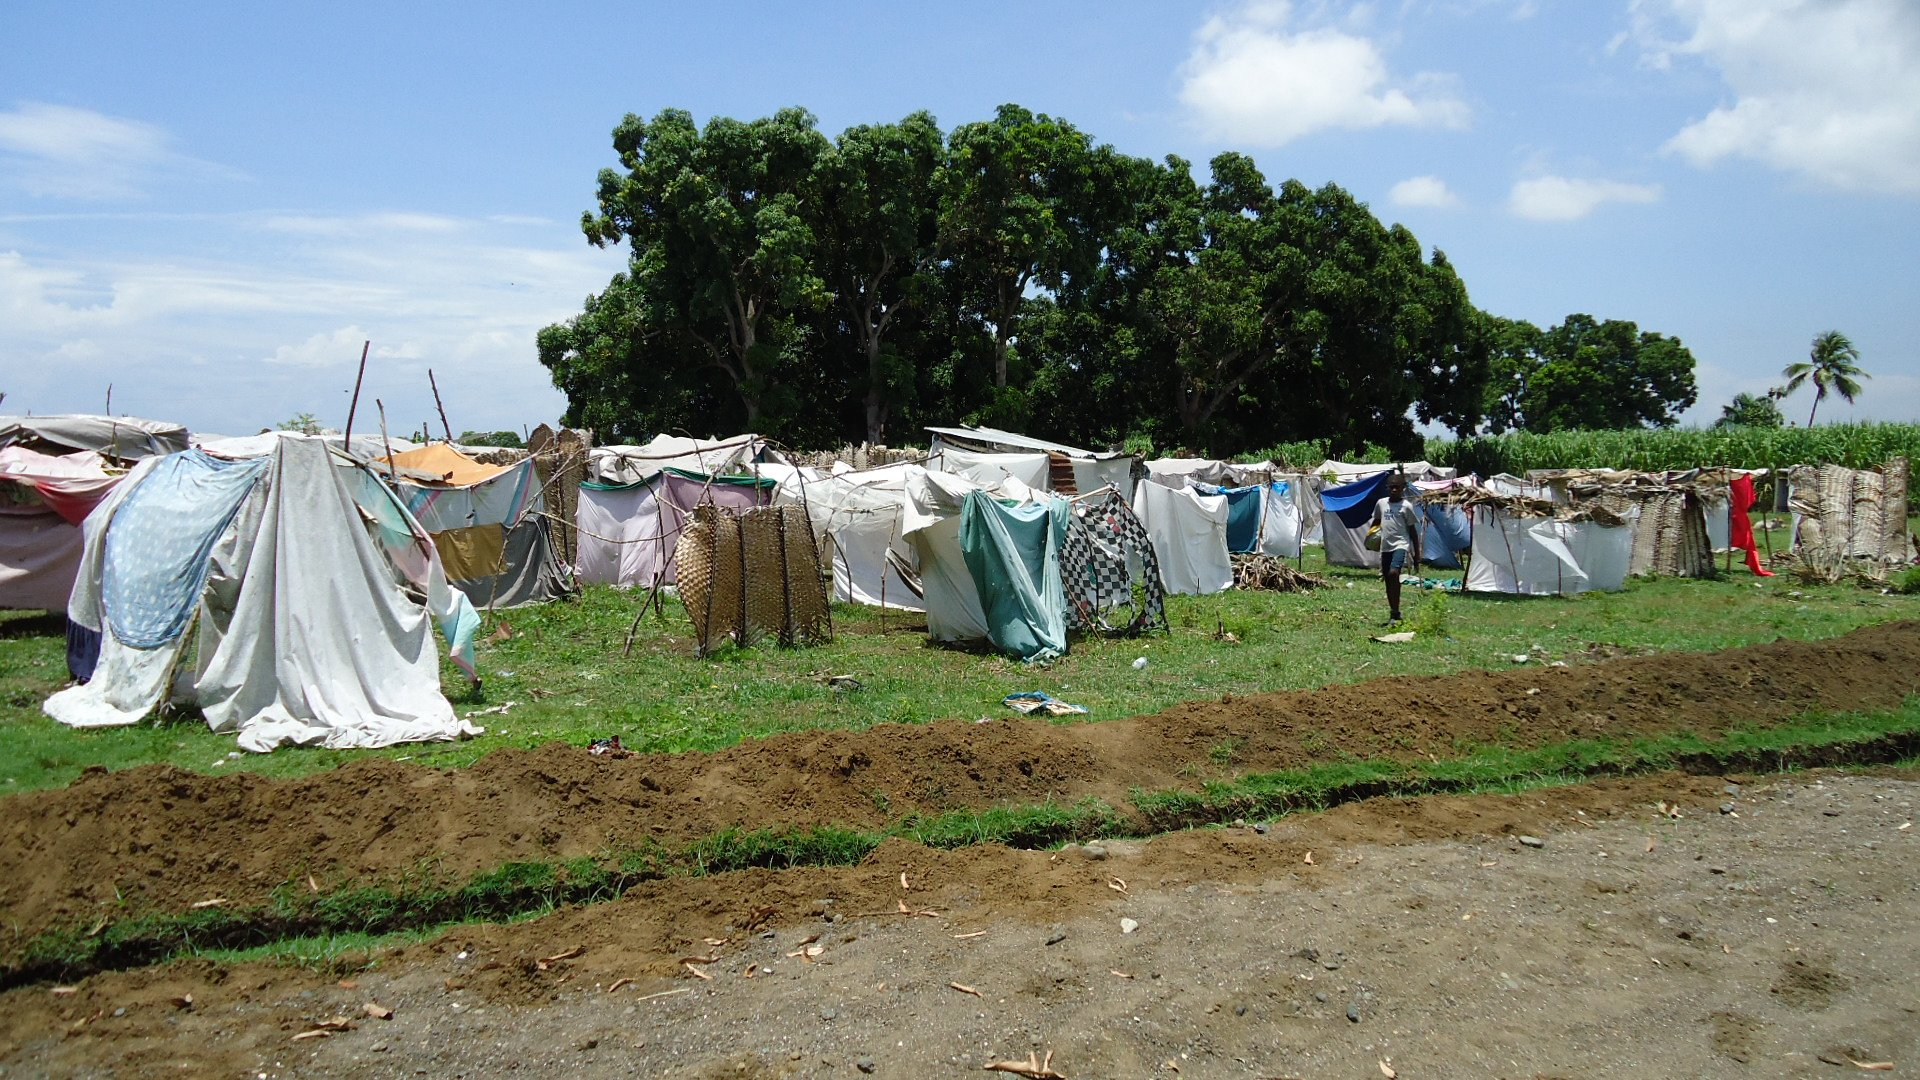 'Habitation Augustin' camp for displaced families in Léogane, Haiti, just before a tarpaulin distribution organised by ACTED on 21 May 2010